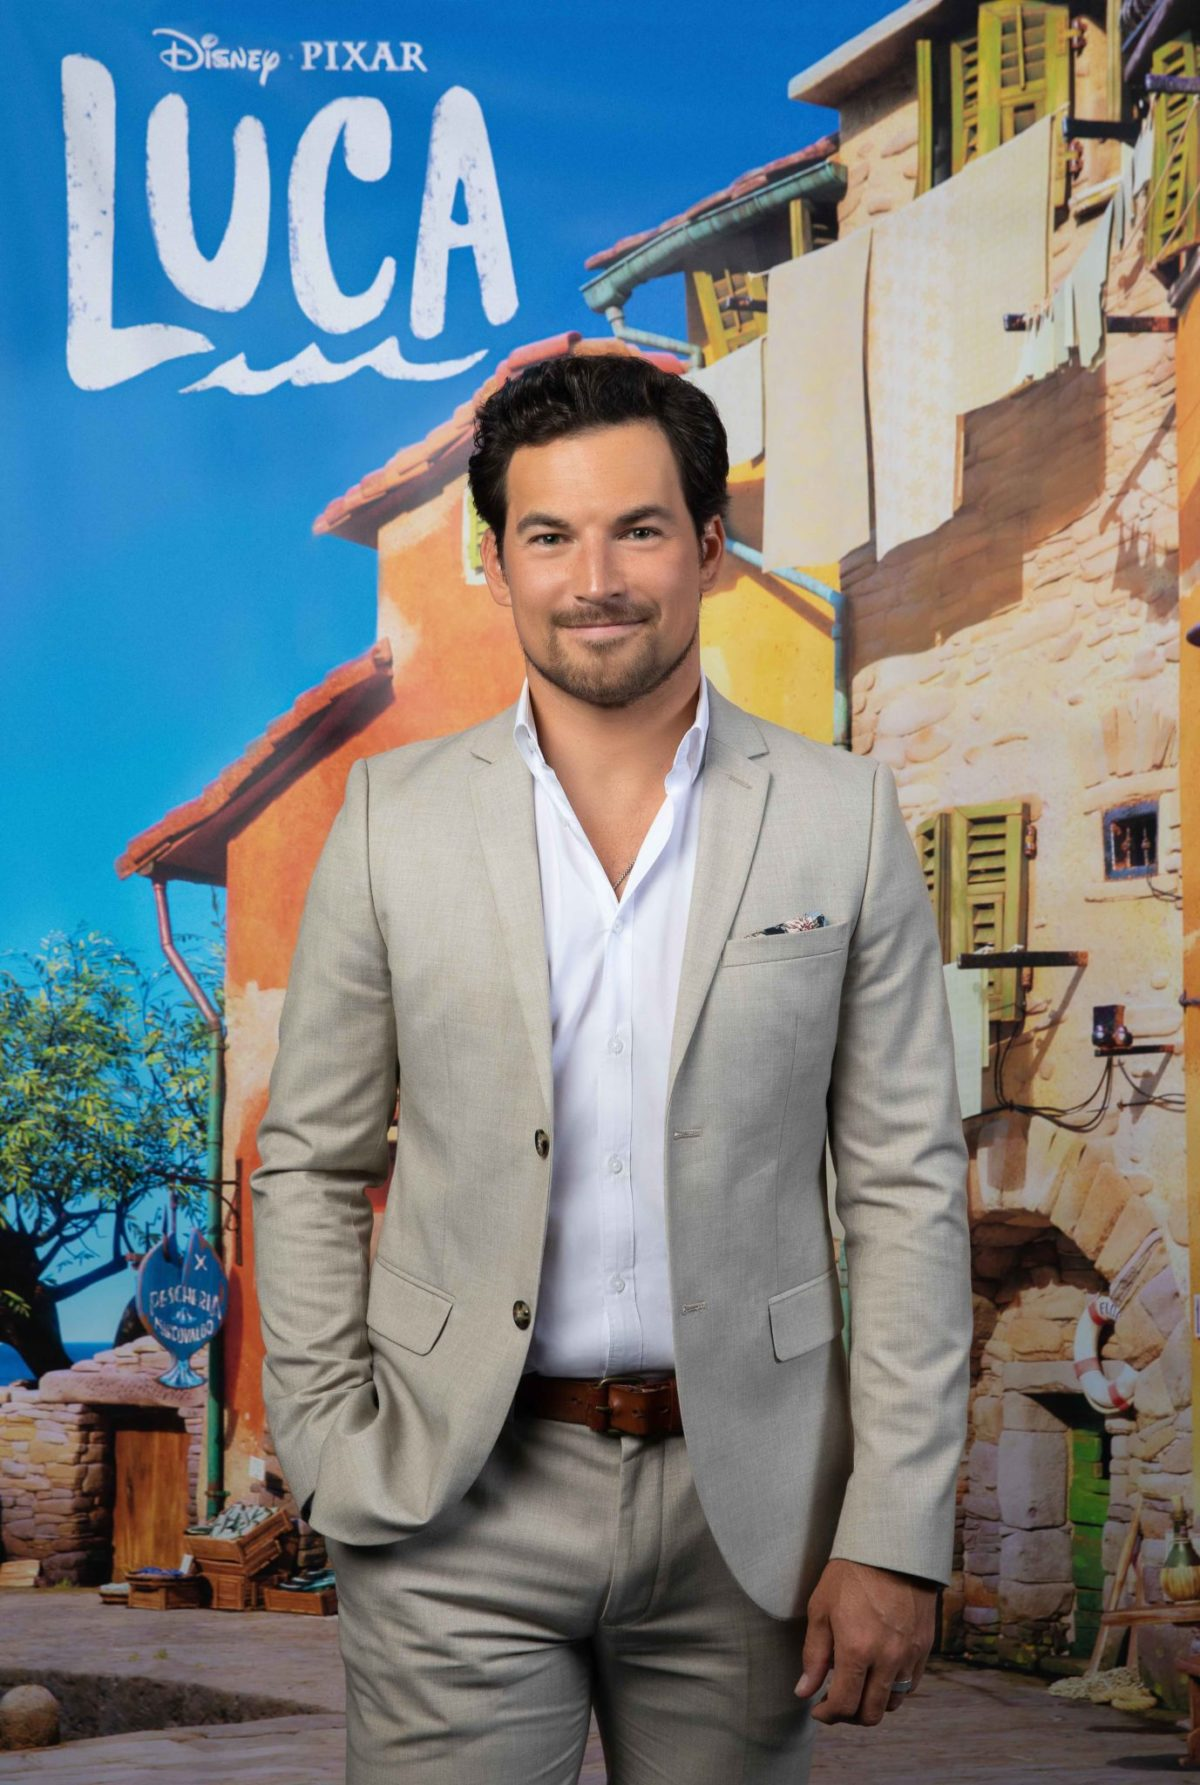 LUCA - (Pictured) Giacomo Gianniotti. Photo by Mark Von Holden/Disney. © 2021 Disney/Pixar. All Rights Reserved.